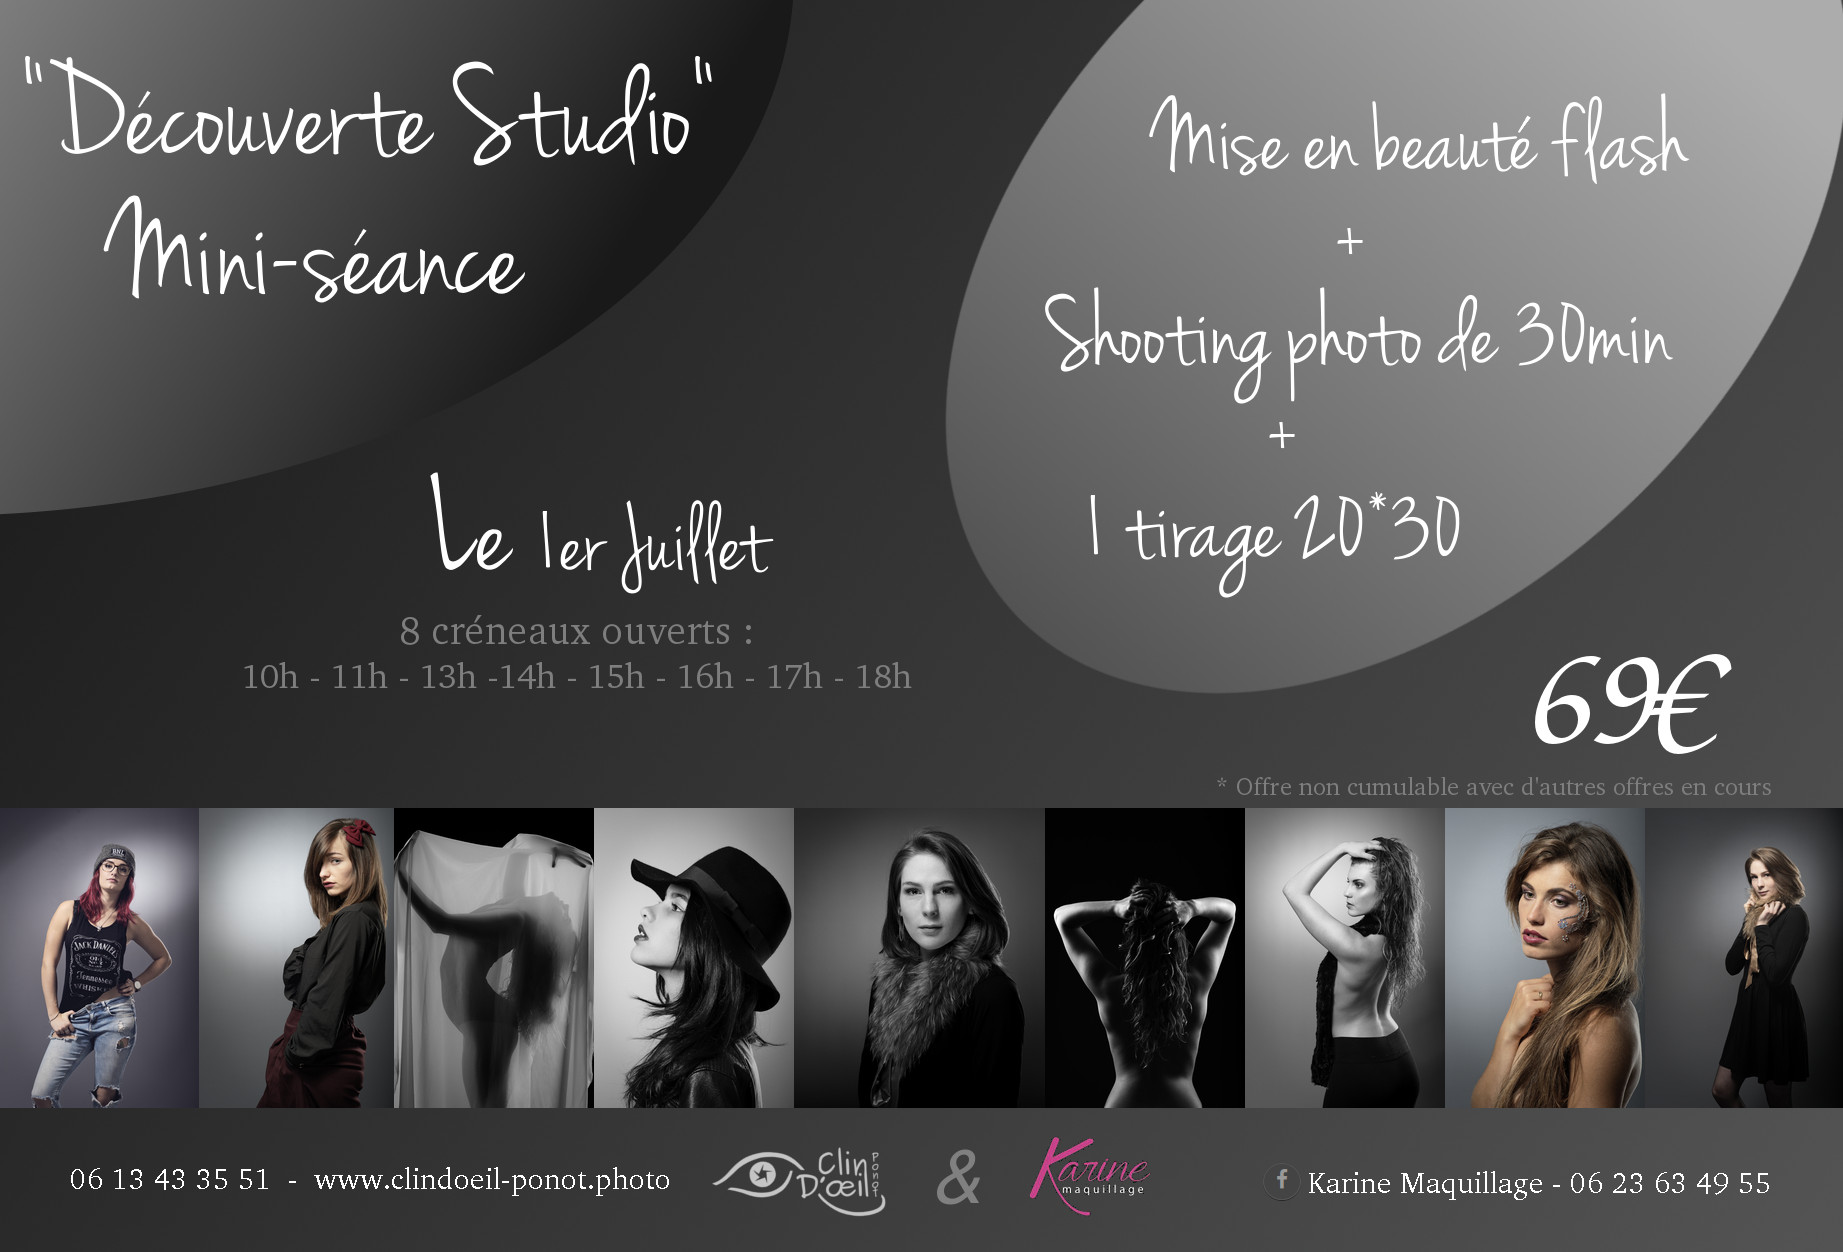 Seance decouverte studio